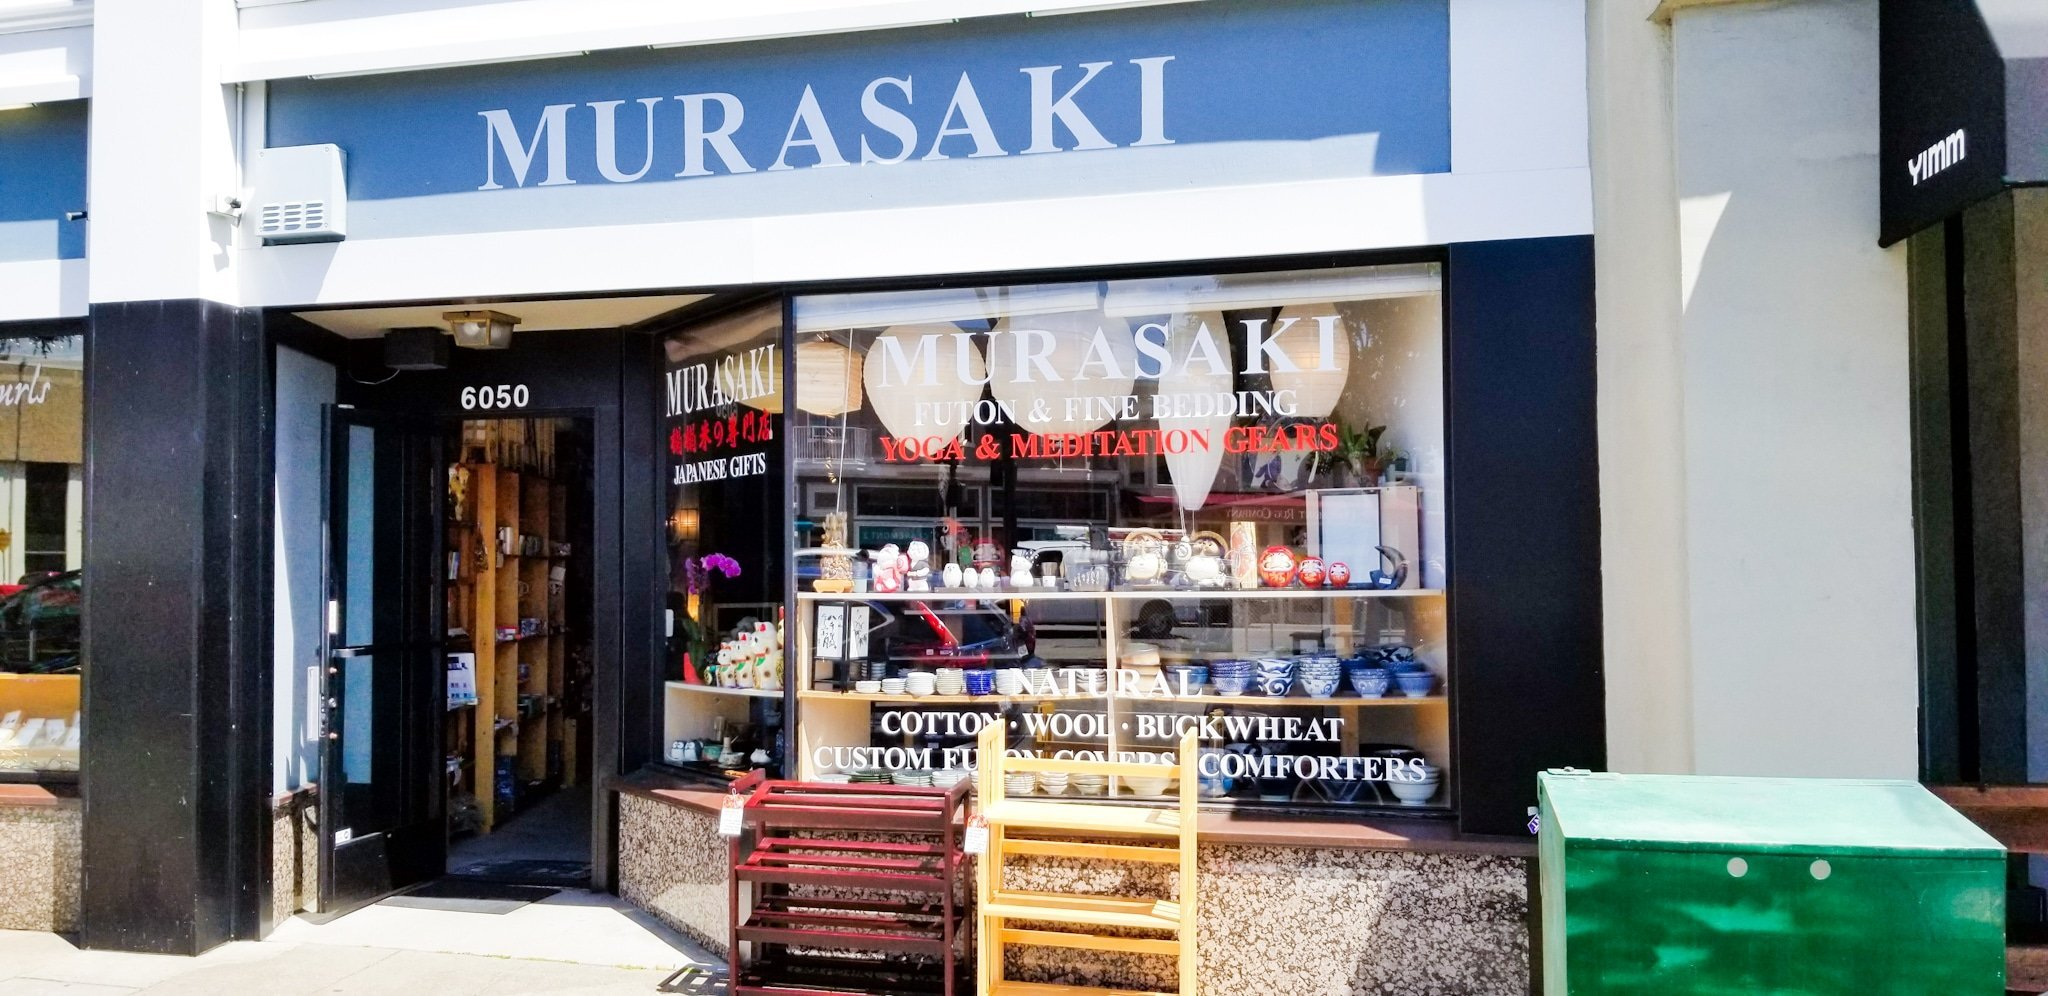 Murasaki in Rockridge in Oakland